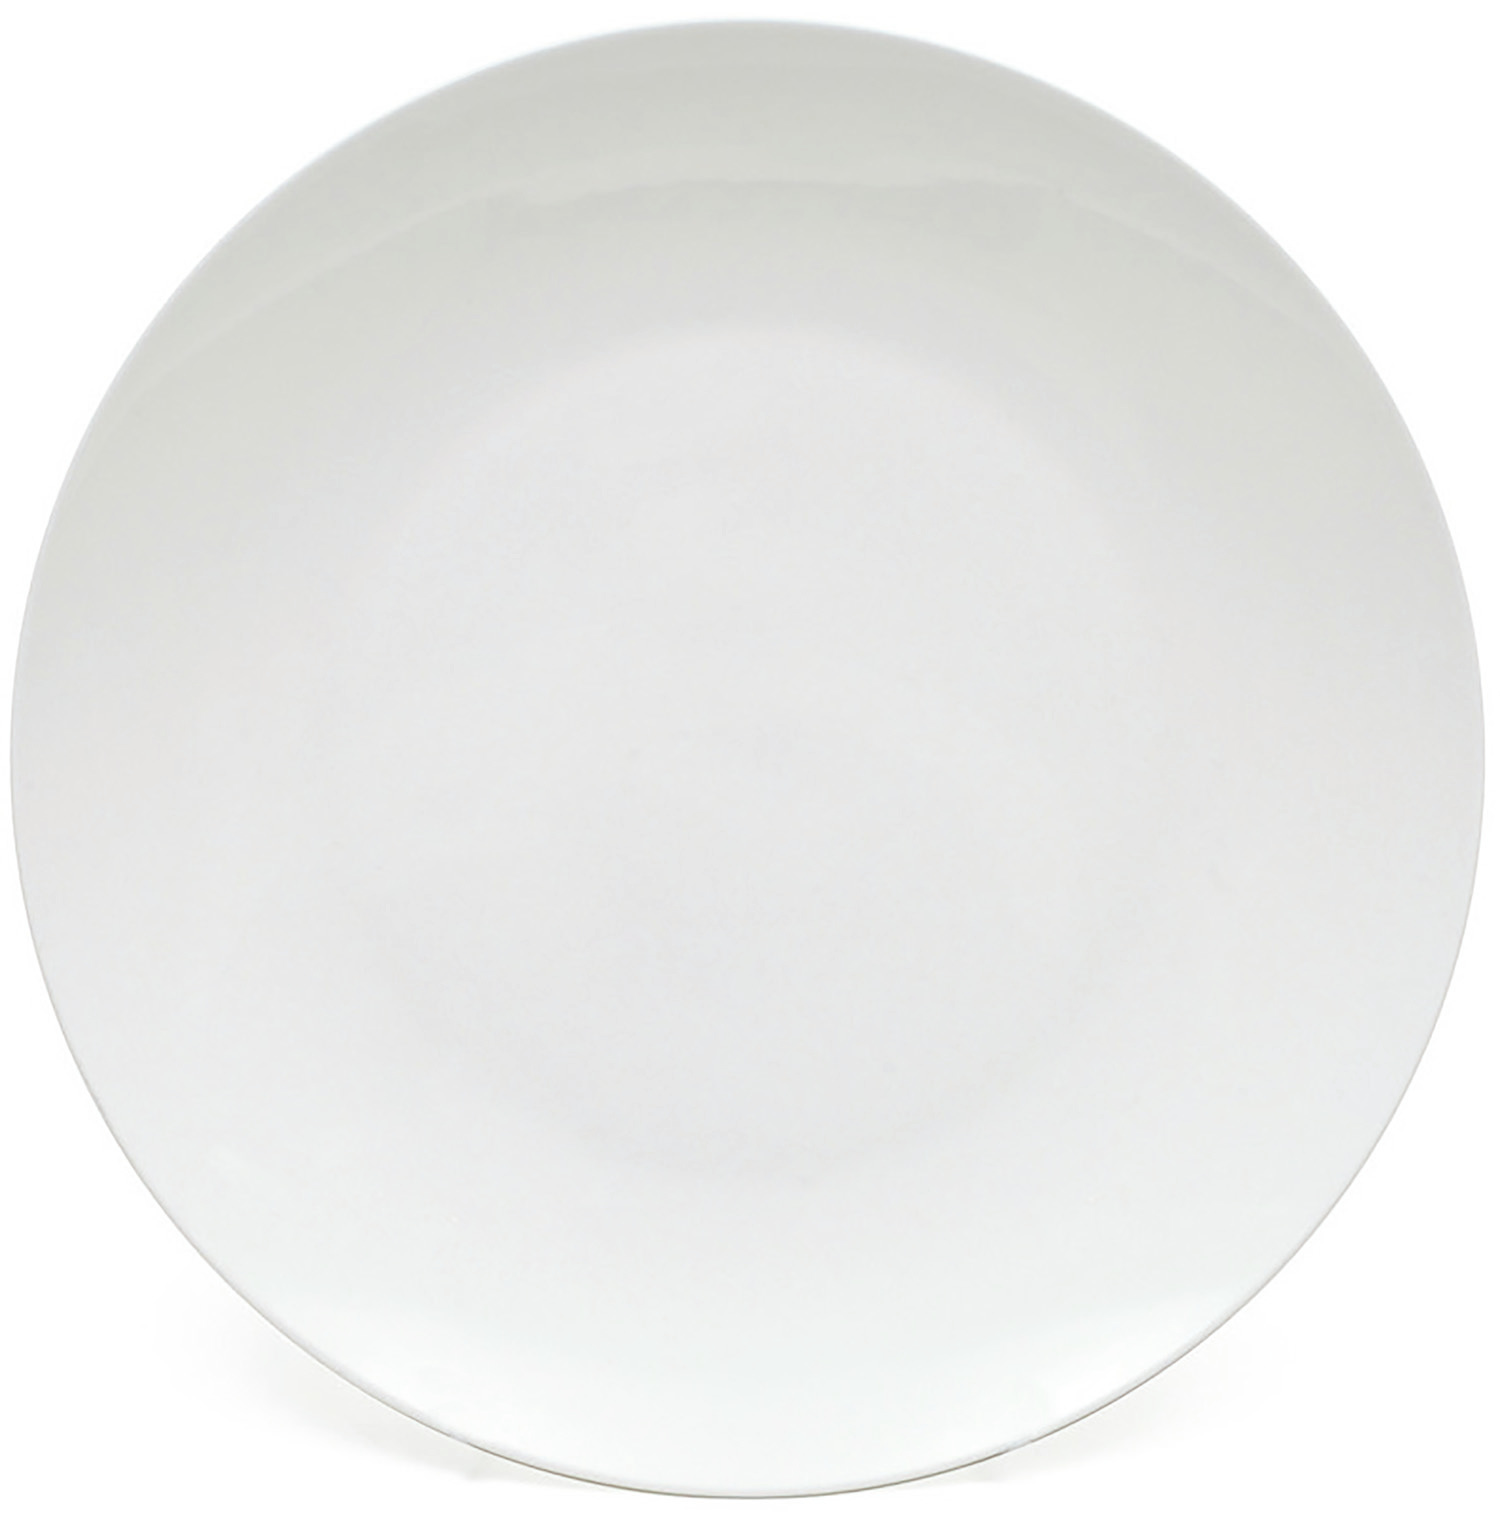 Maxwell & Williams Cashmere 27Cm Coupe Dinner Plate